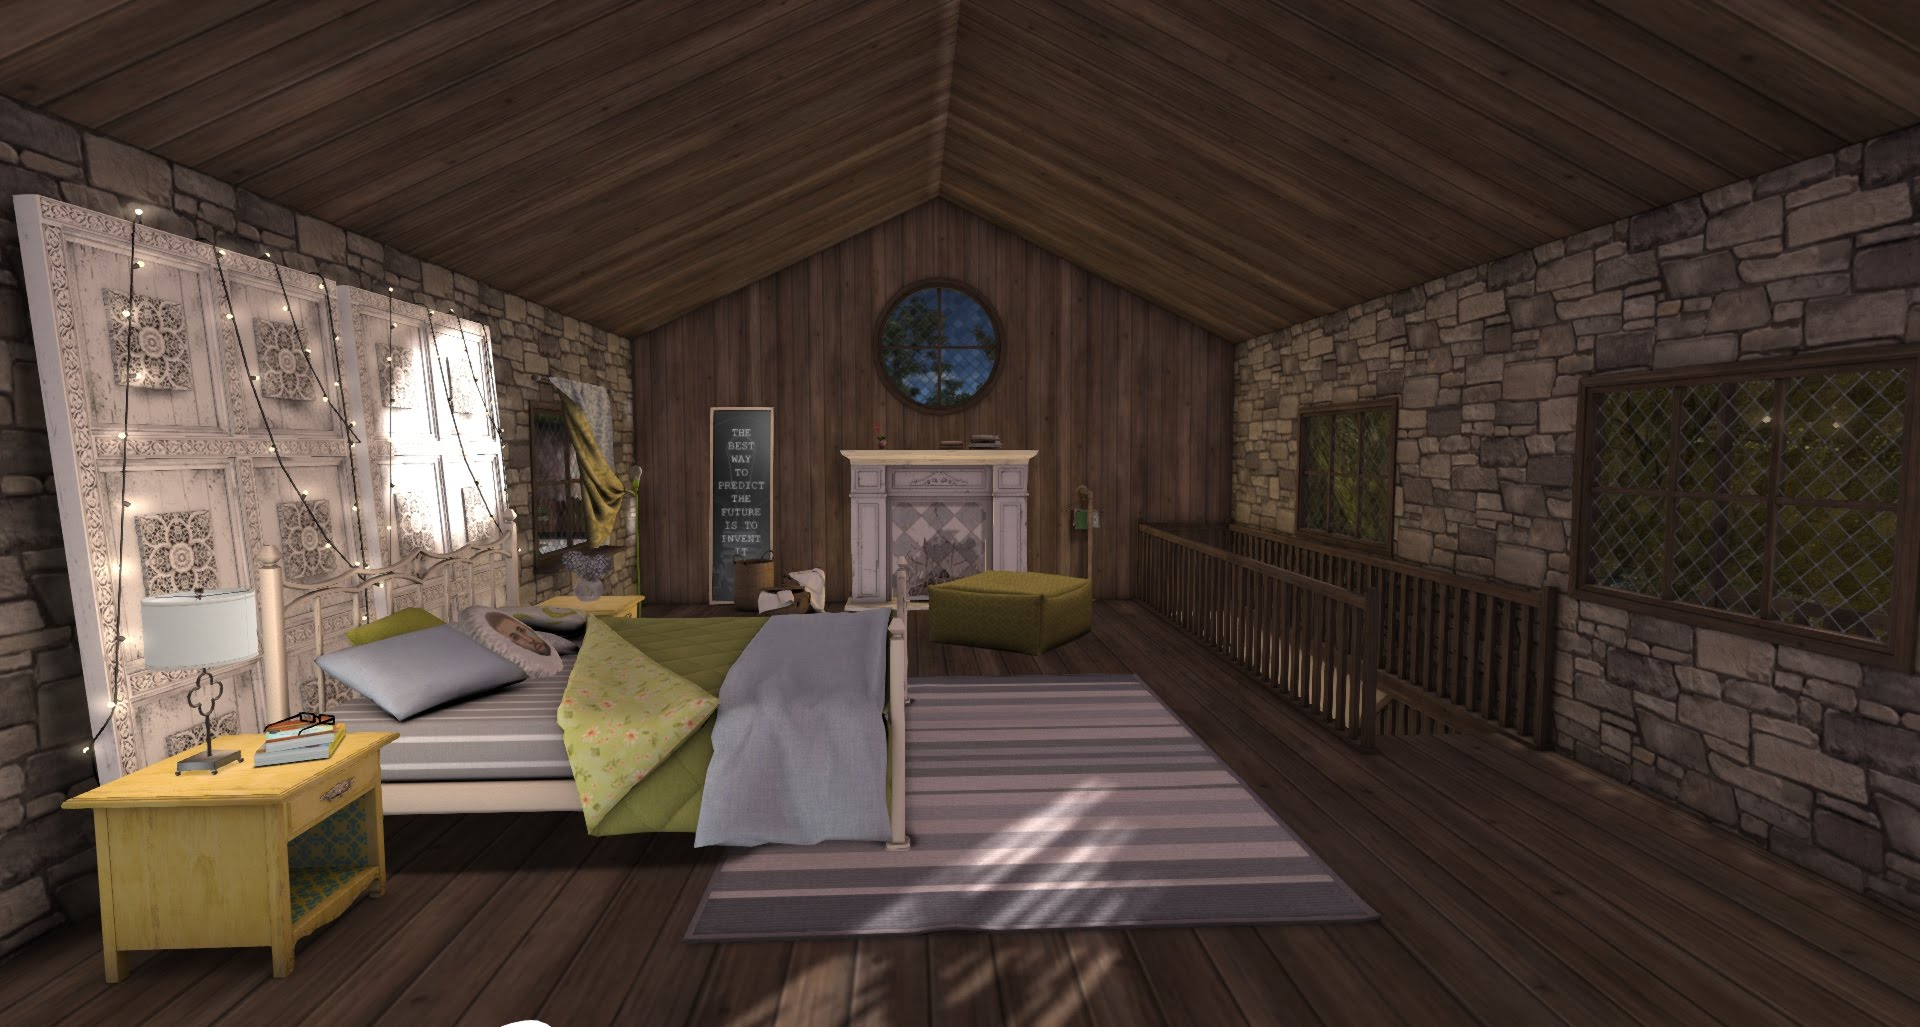 House 8 - Iolaus